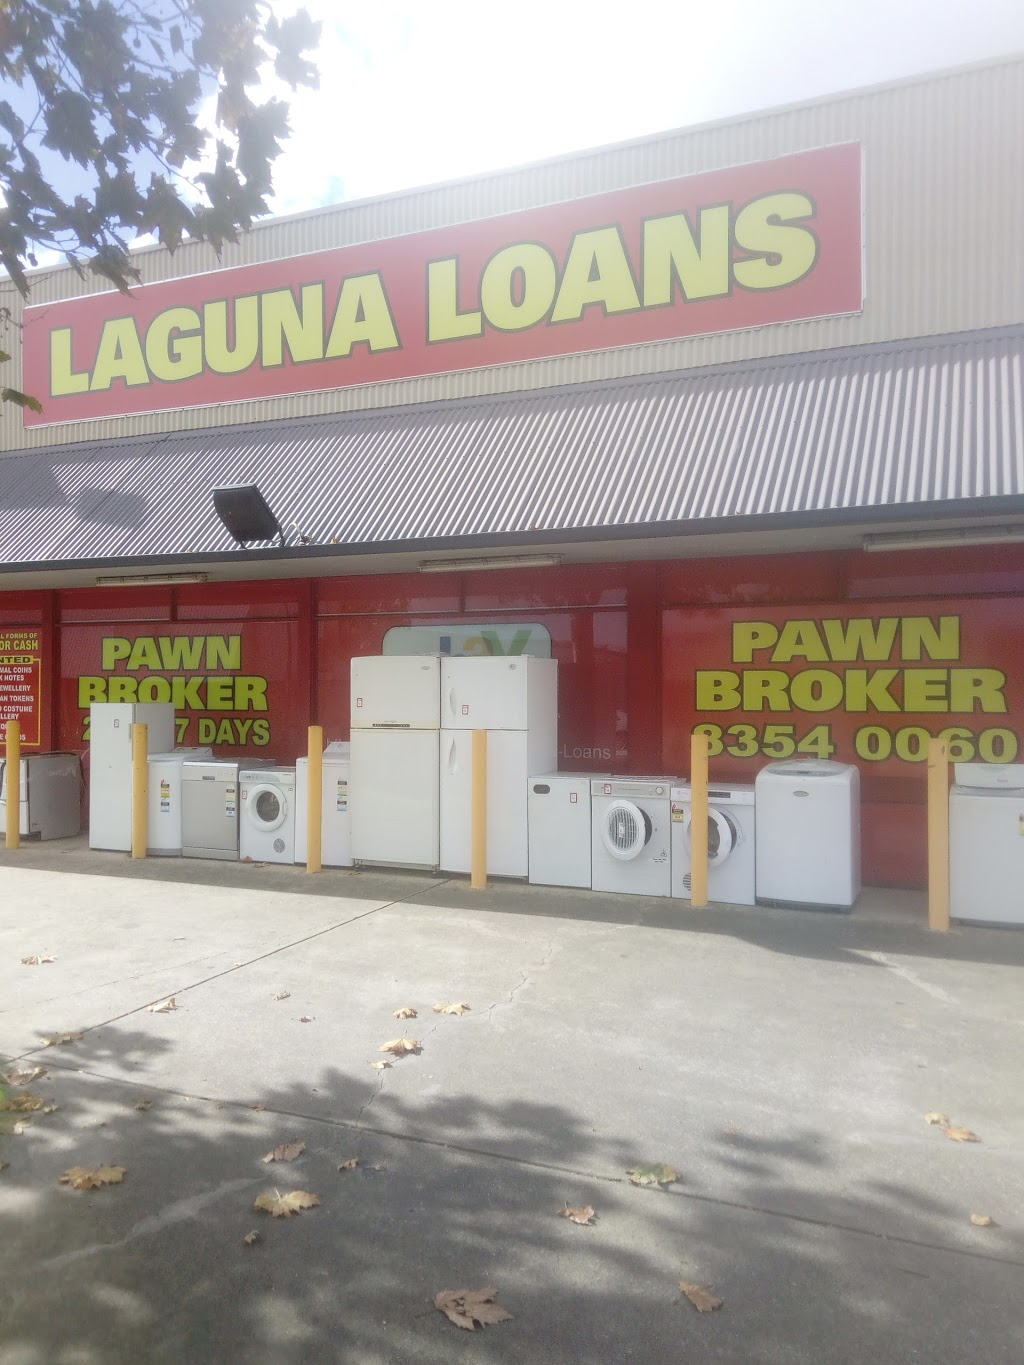 Laguna Loans | store | 321 South Rd, Mile End South SA 5031, Australia | 0883540060 OR +61 8 8354 0060